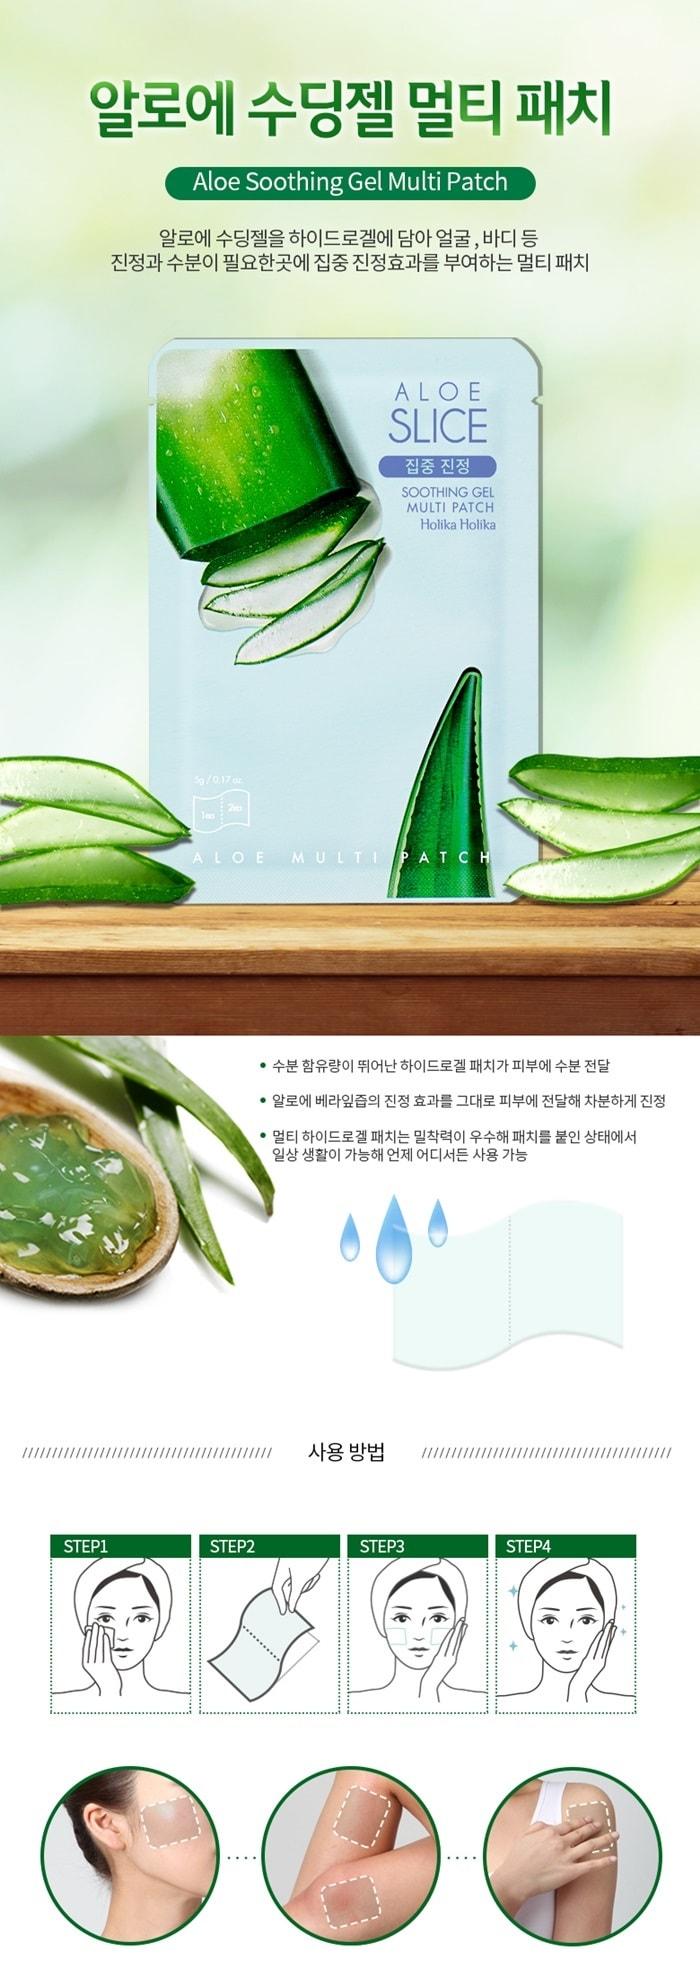 Holika Holika Aloe Soothing Multi Patch 5g